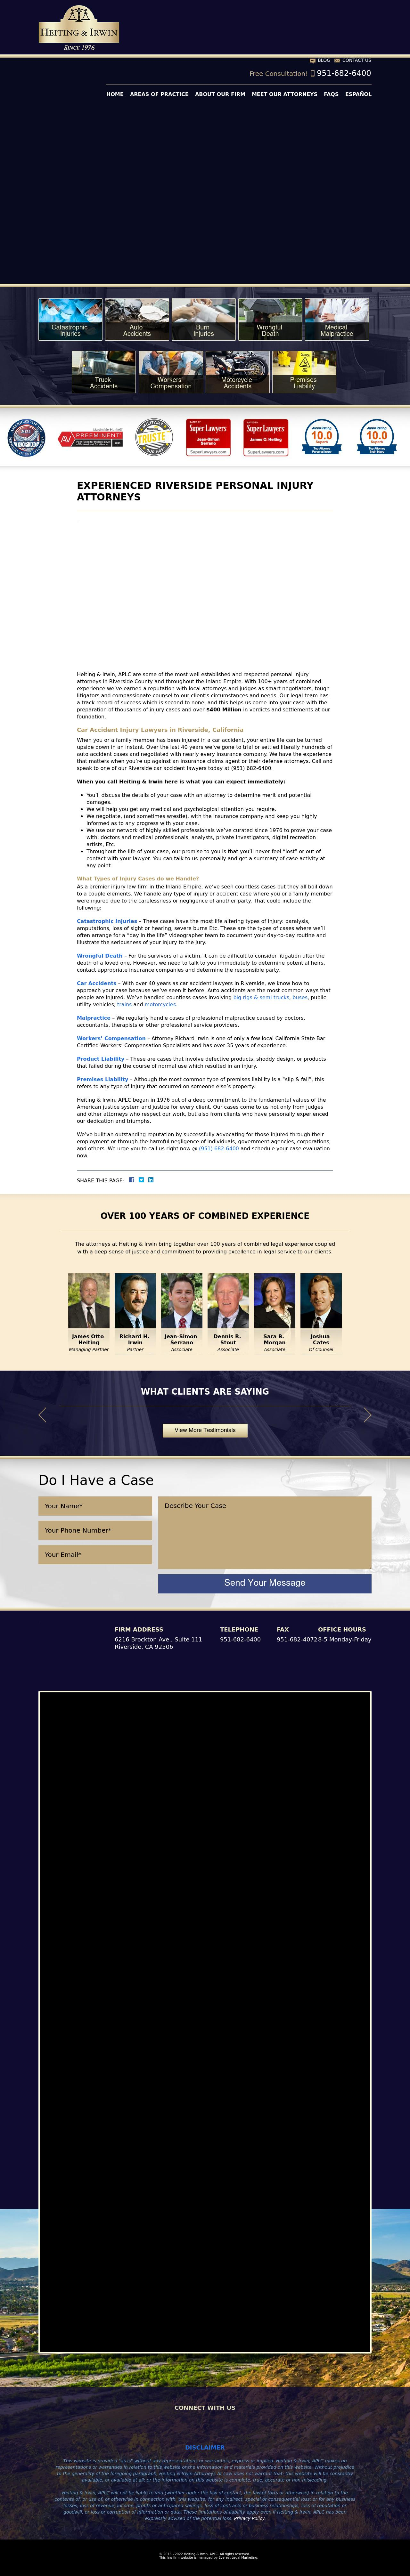 Heiting & Irwin-A Professional Law Corporation - Riverside CA Lawyers